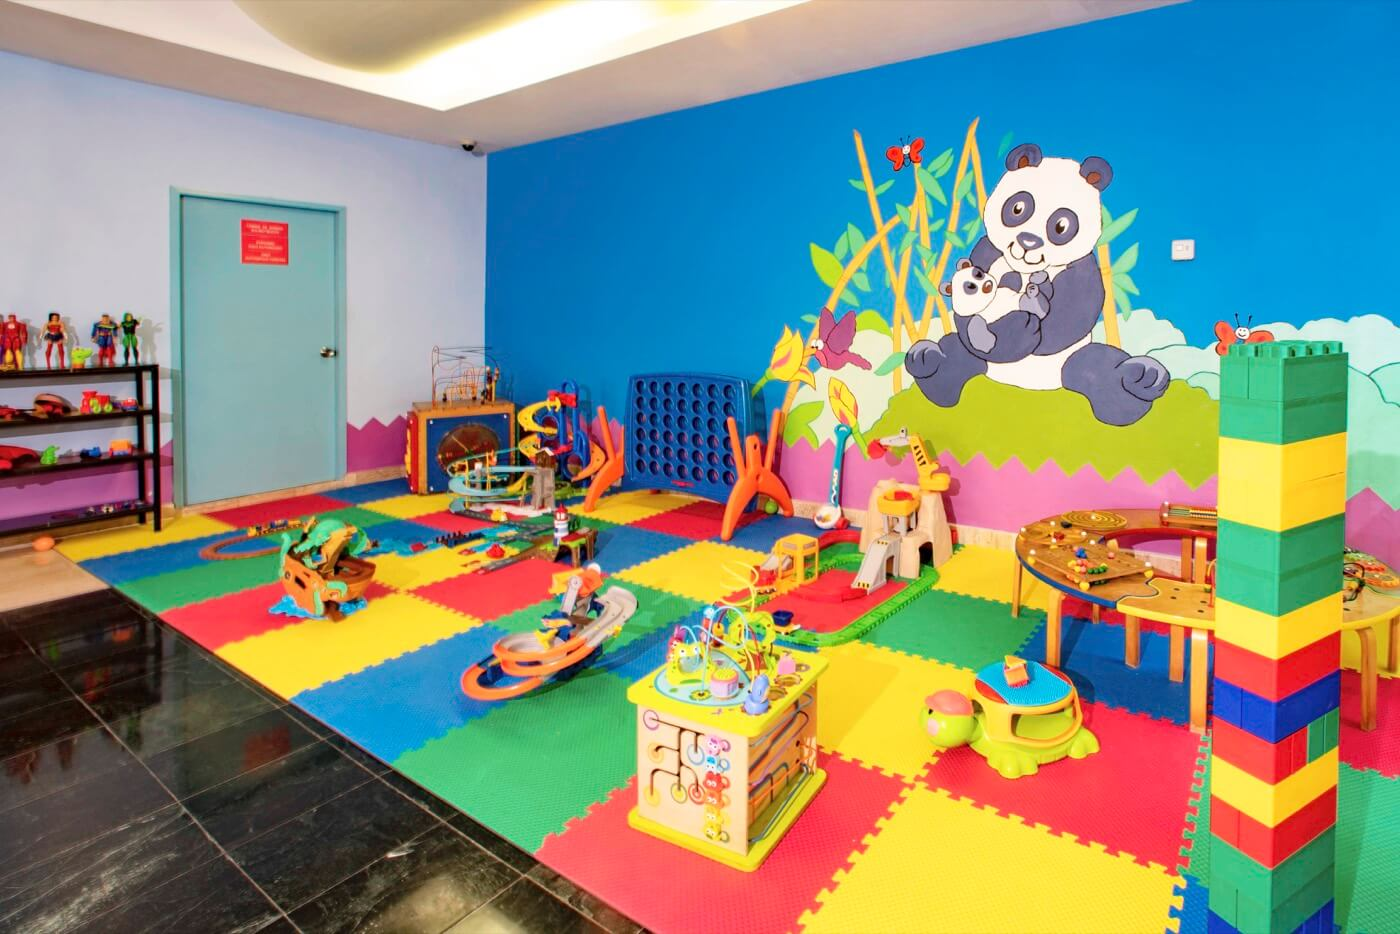 KiddoZone Recreation Area at Oasis Palm Hotel